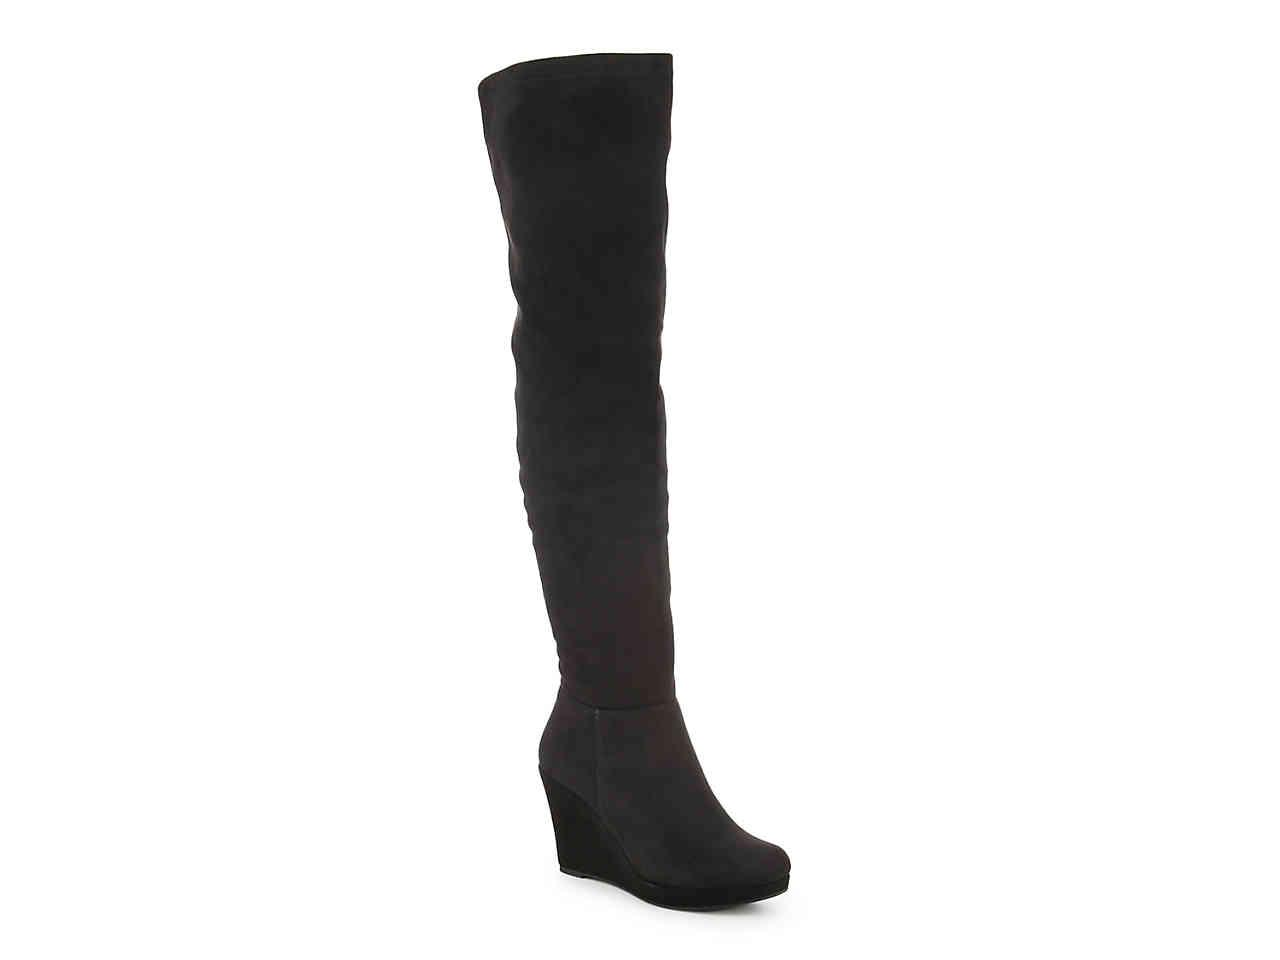 25f2a6c9971 Lyst - Chinese Laundry Leah Wedge Over The Knee Boot in Black